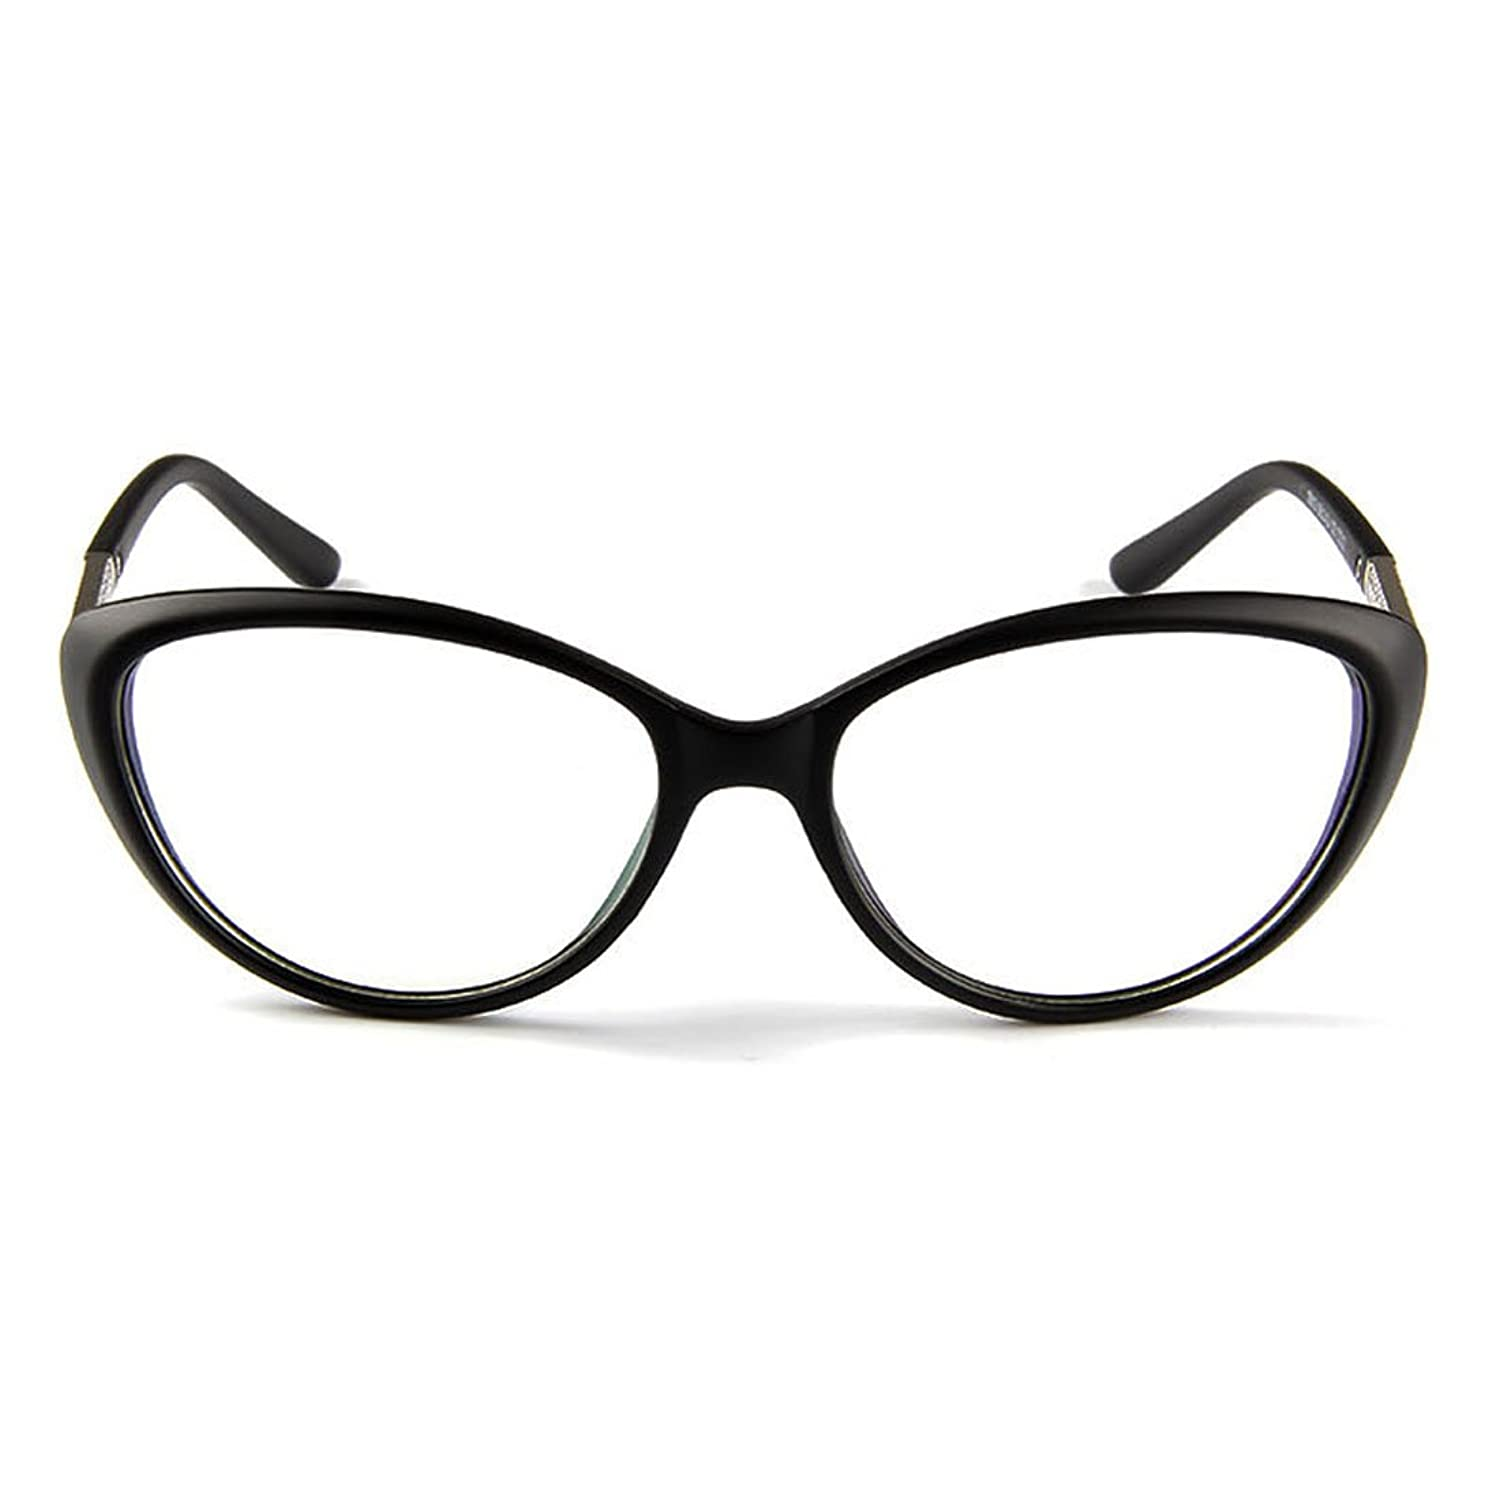 chanel reading glasses. amazon.com: d.king women fashion cat eyeglasses frames clear lens 56mm blakc: clothing chanel reading glasses